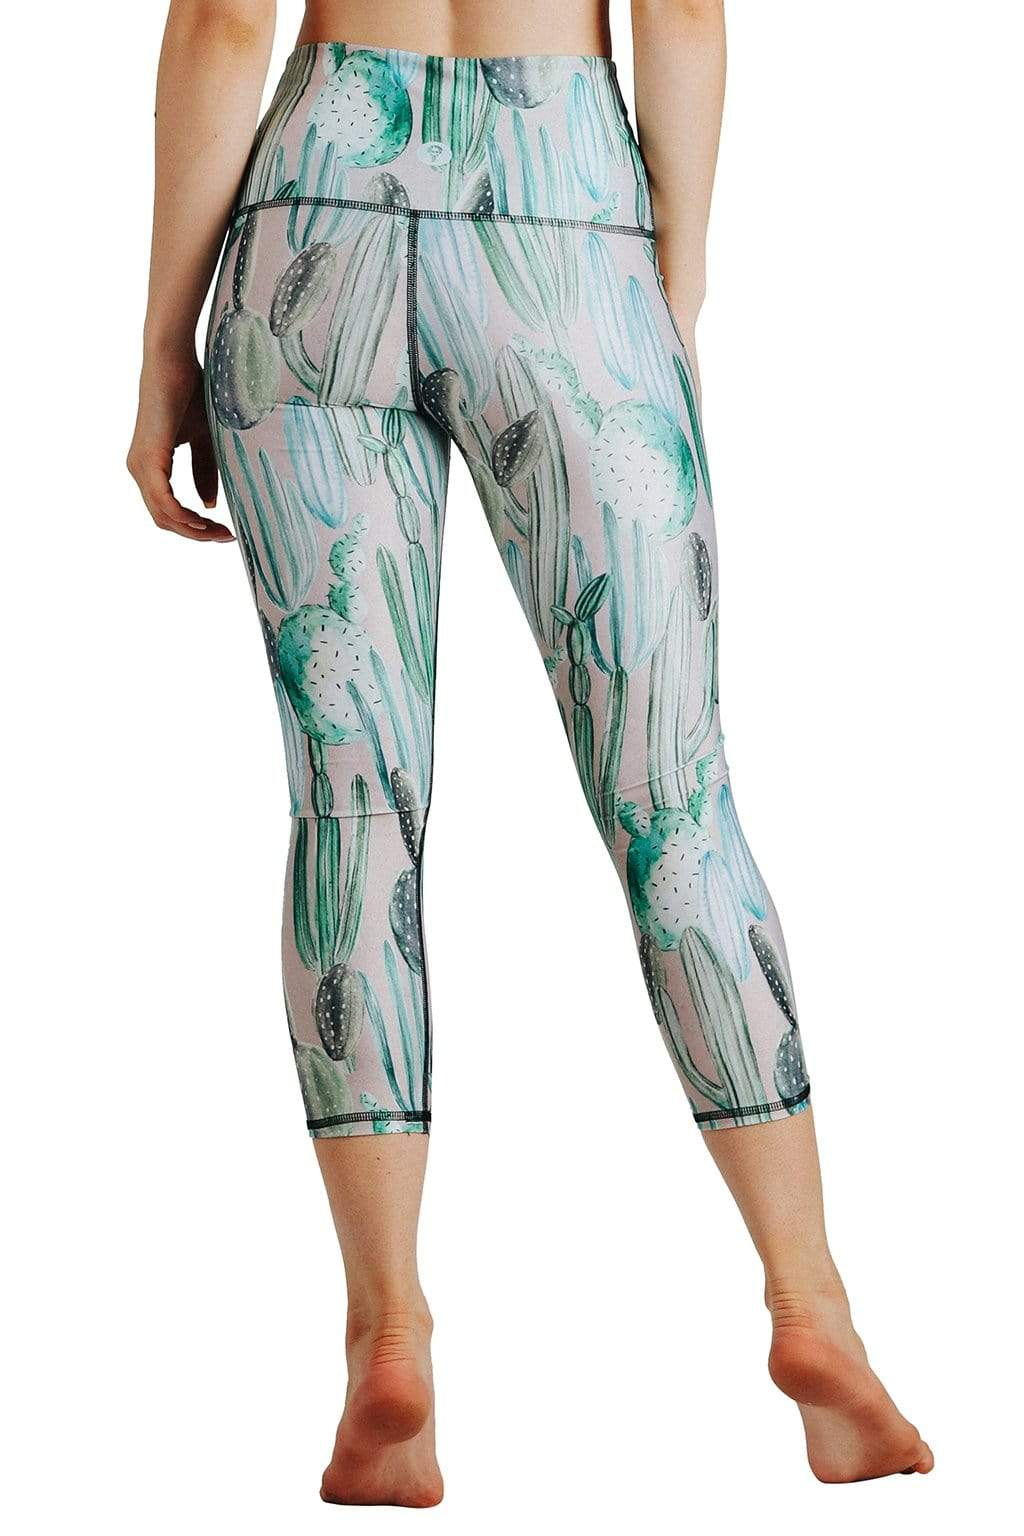 Yoga Democracy Leggings Don't Be a Prick Printed Yoga Crops